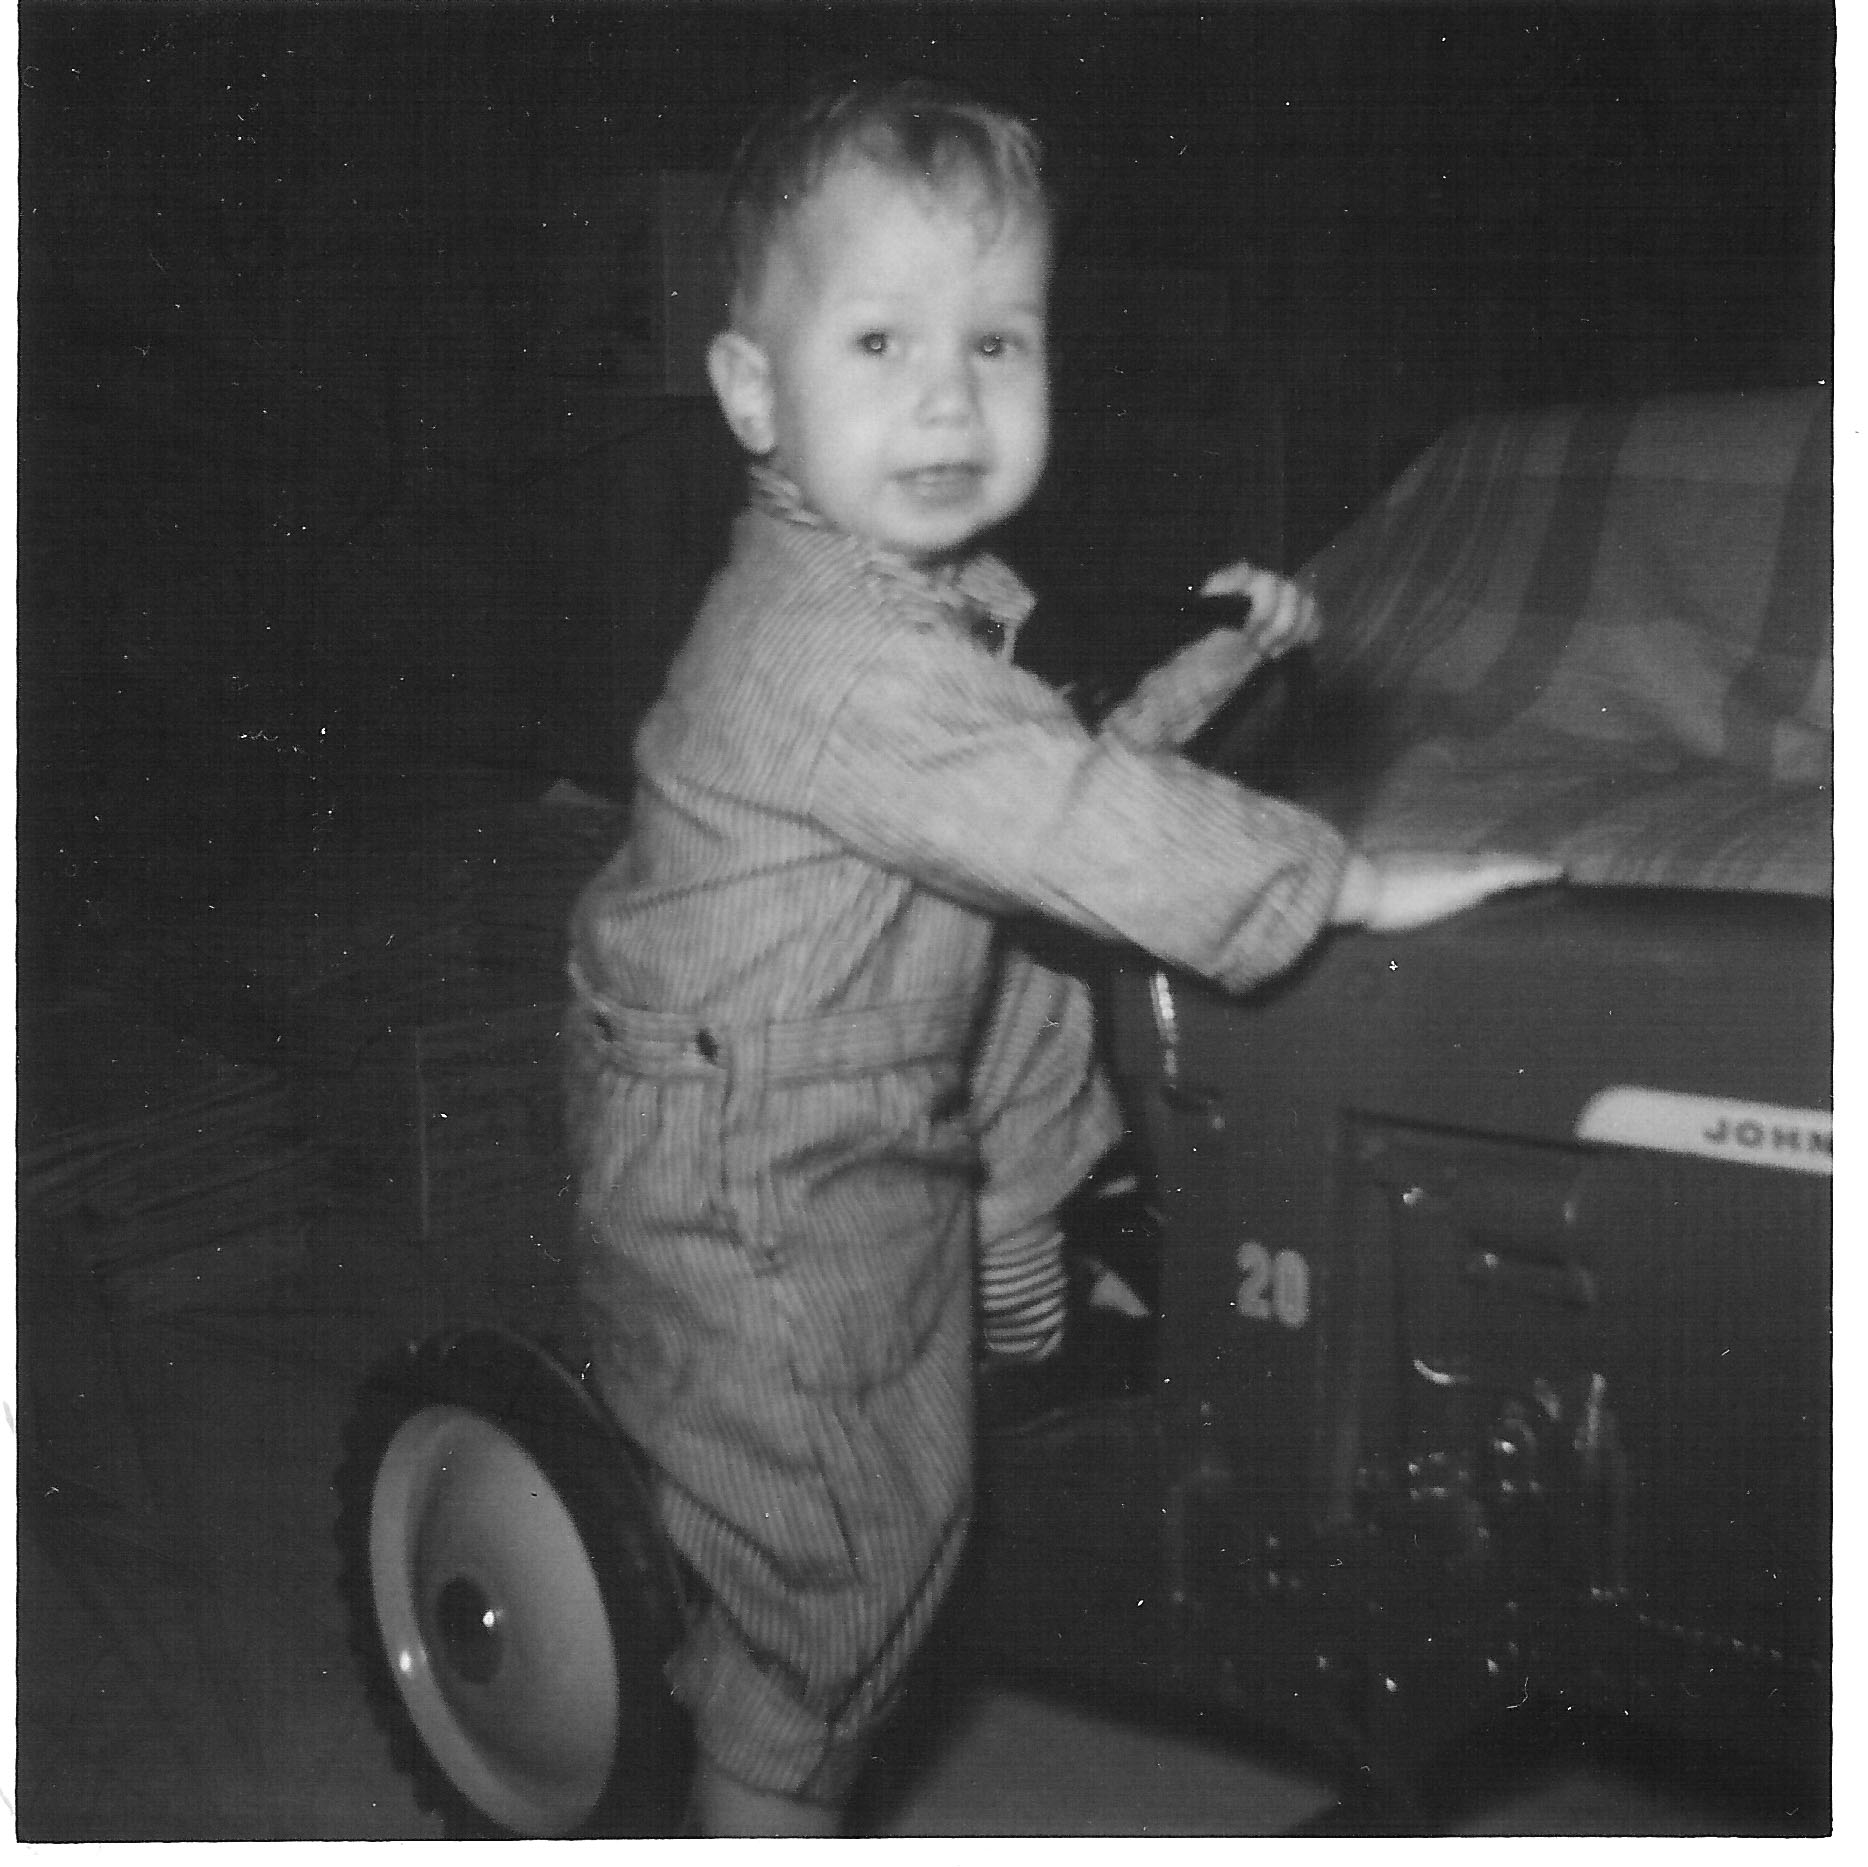 All dressed up and ready to ride my John Deere pedal tractor in the late 1960s.